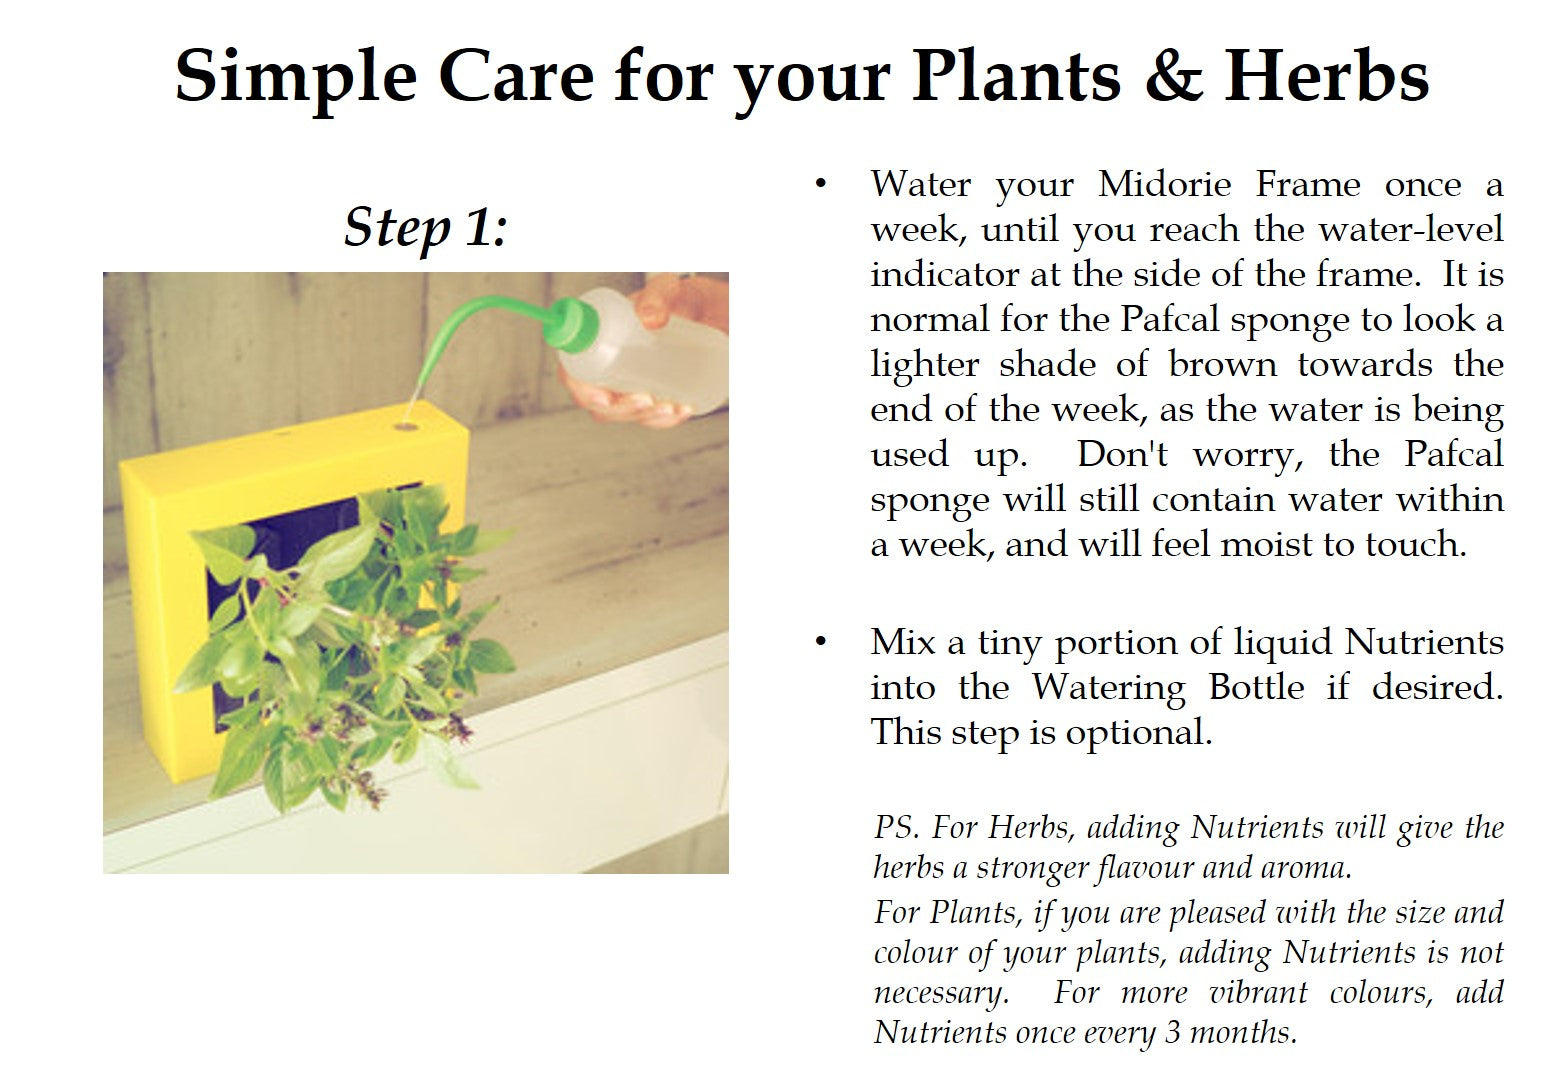 Midorie Garden_Pafcal_Care Instructions_Step 1